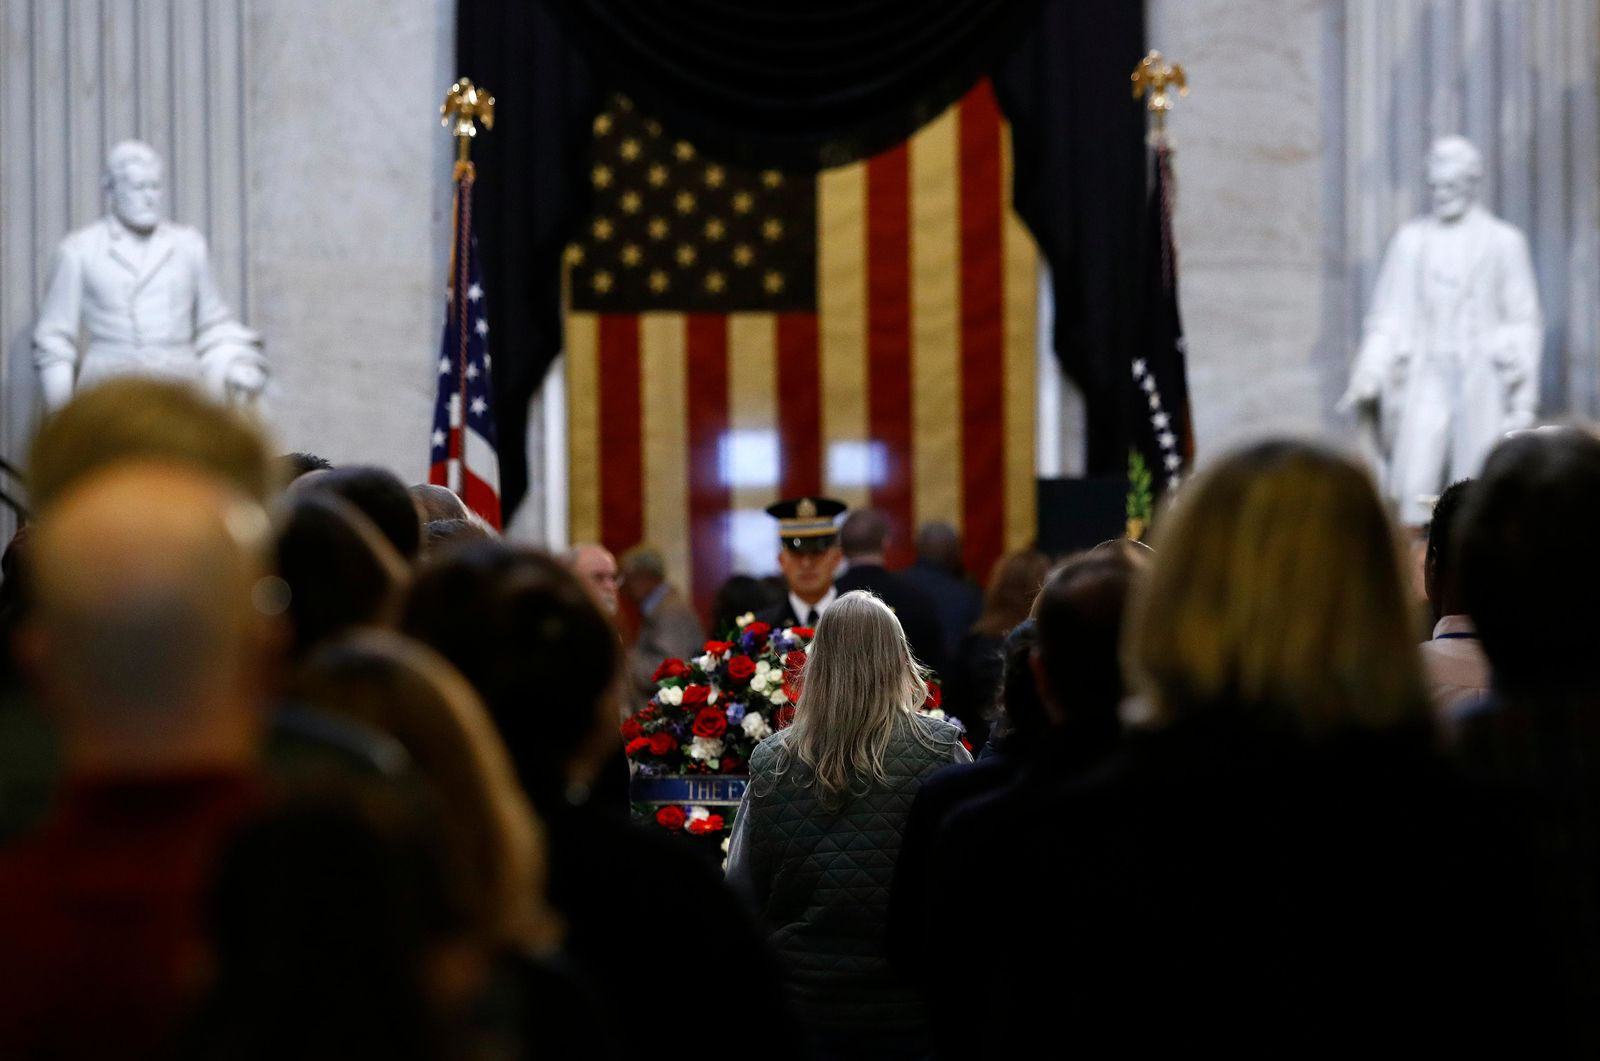 Visitors file into the Capitol Rotunda to view the flag-draped casket of former President George H.W. Bush as he lies in state in Washington, Tuesday, Dec. 4, 2018. (AP Photo/Patrick Semansky)